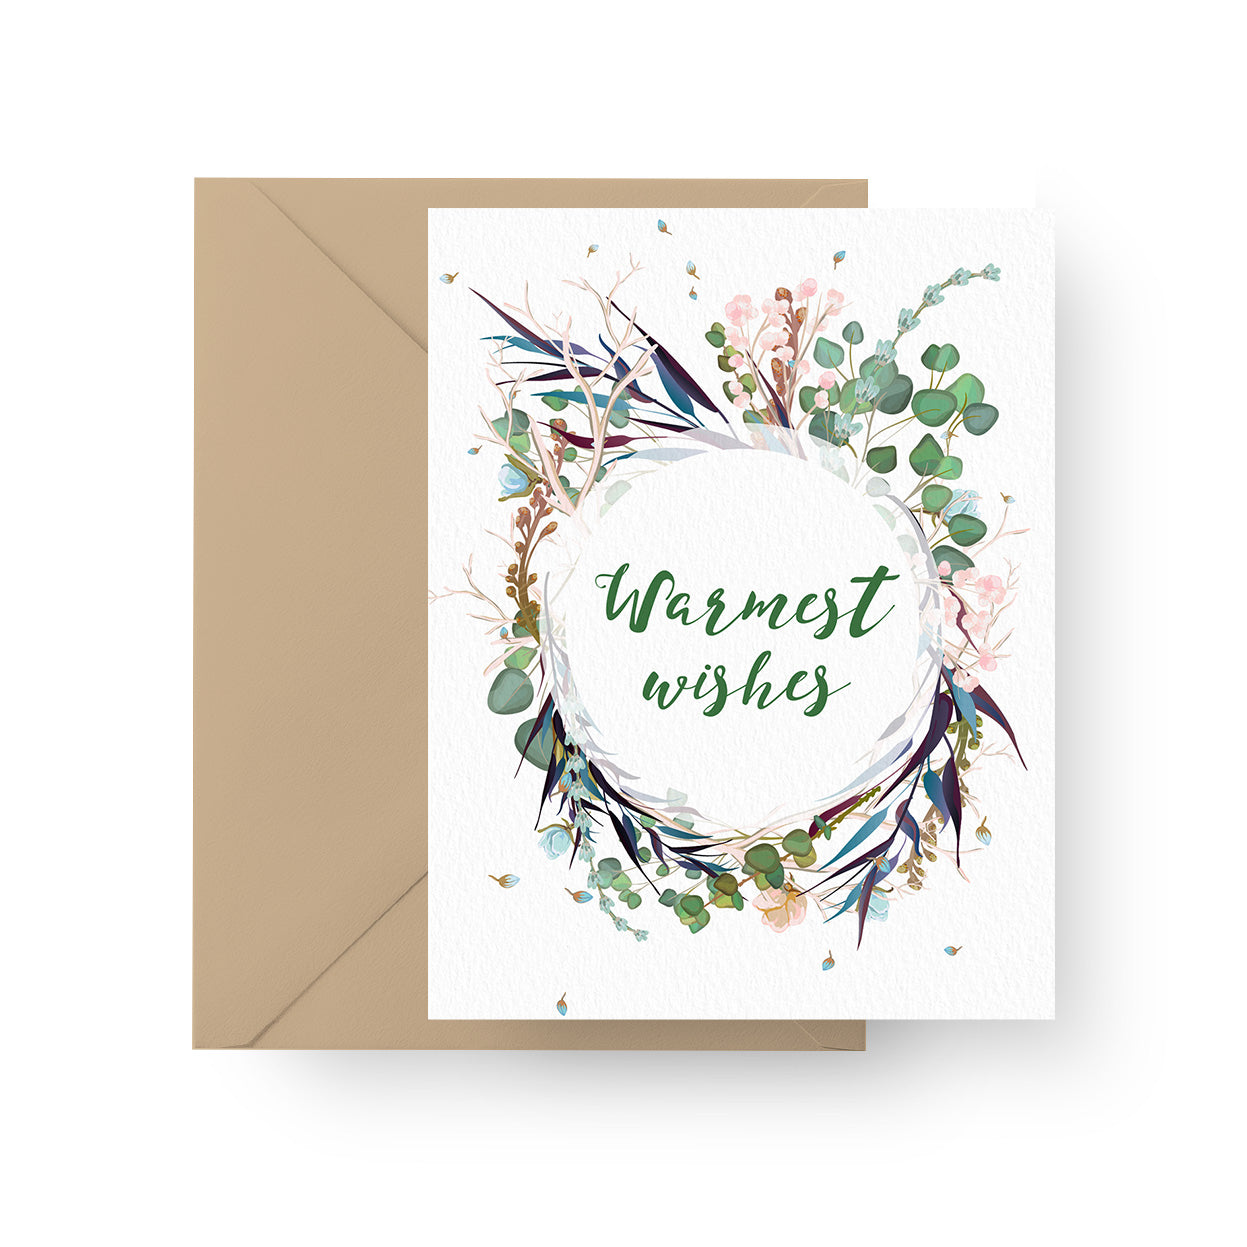 Warmest Wishes Card for sale